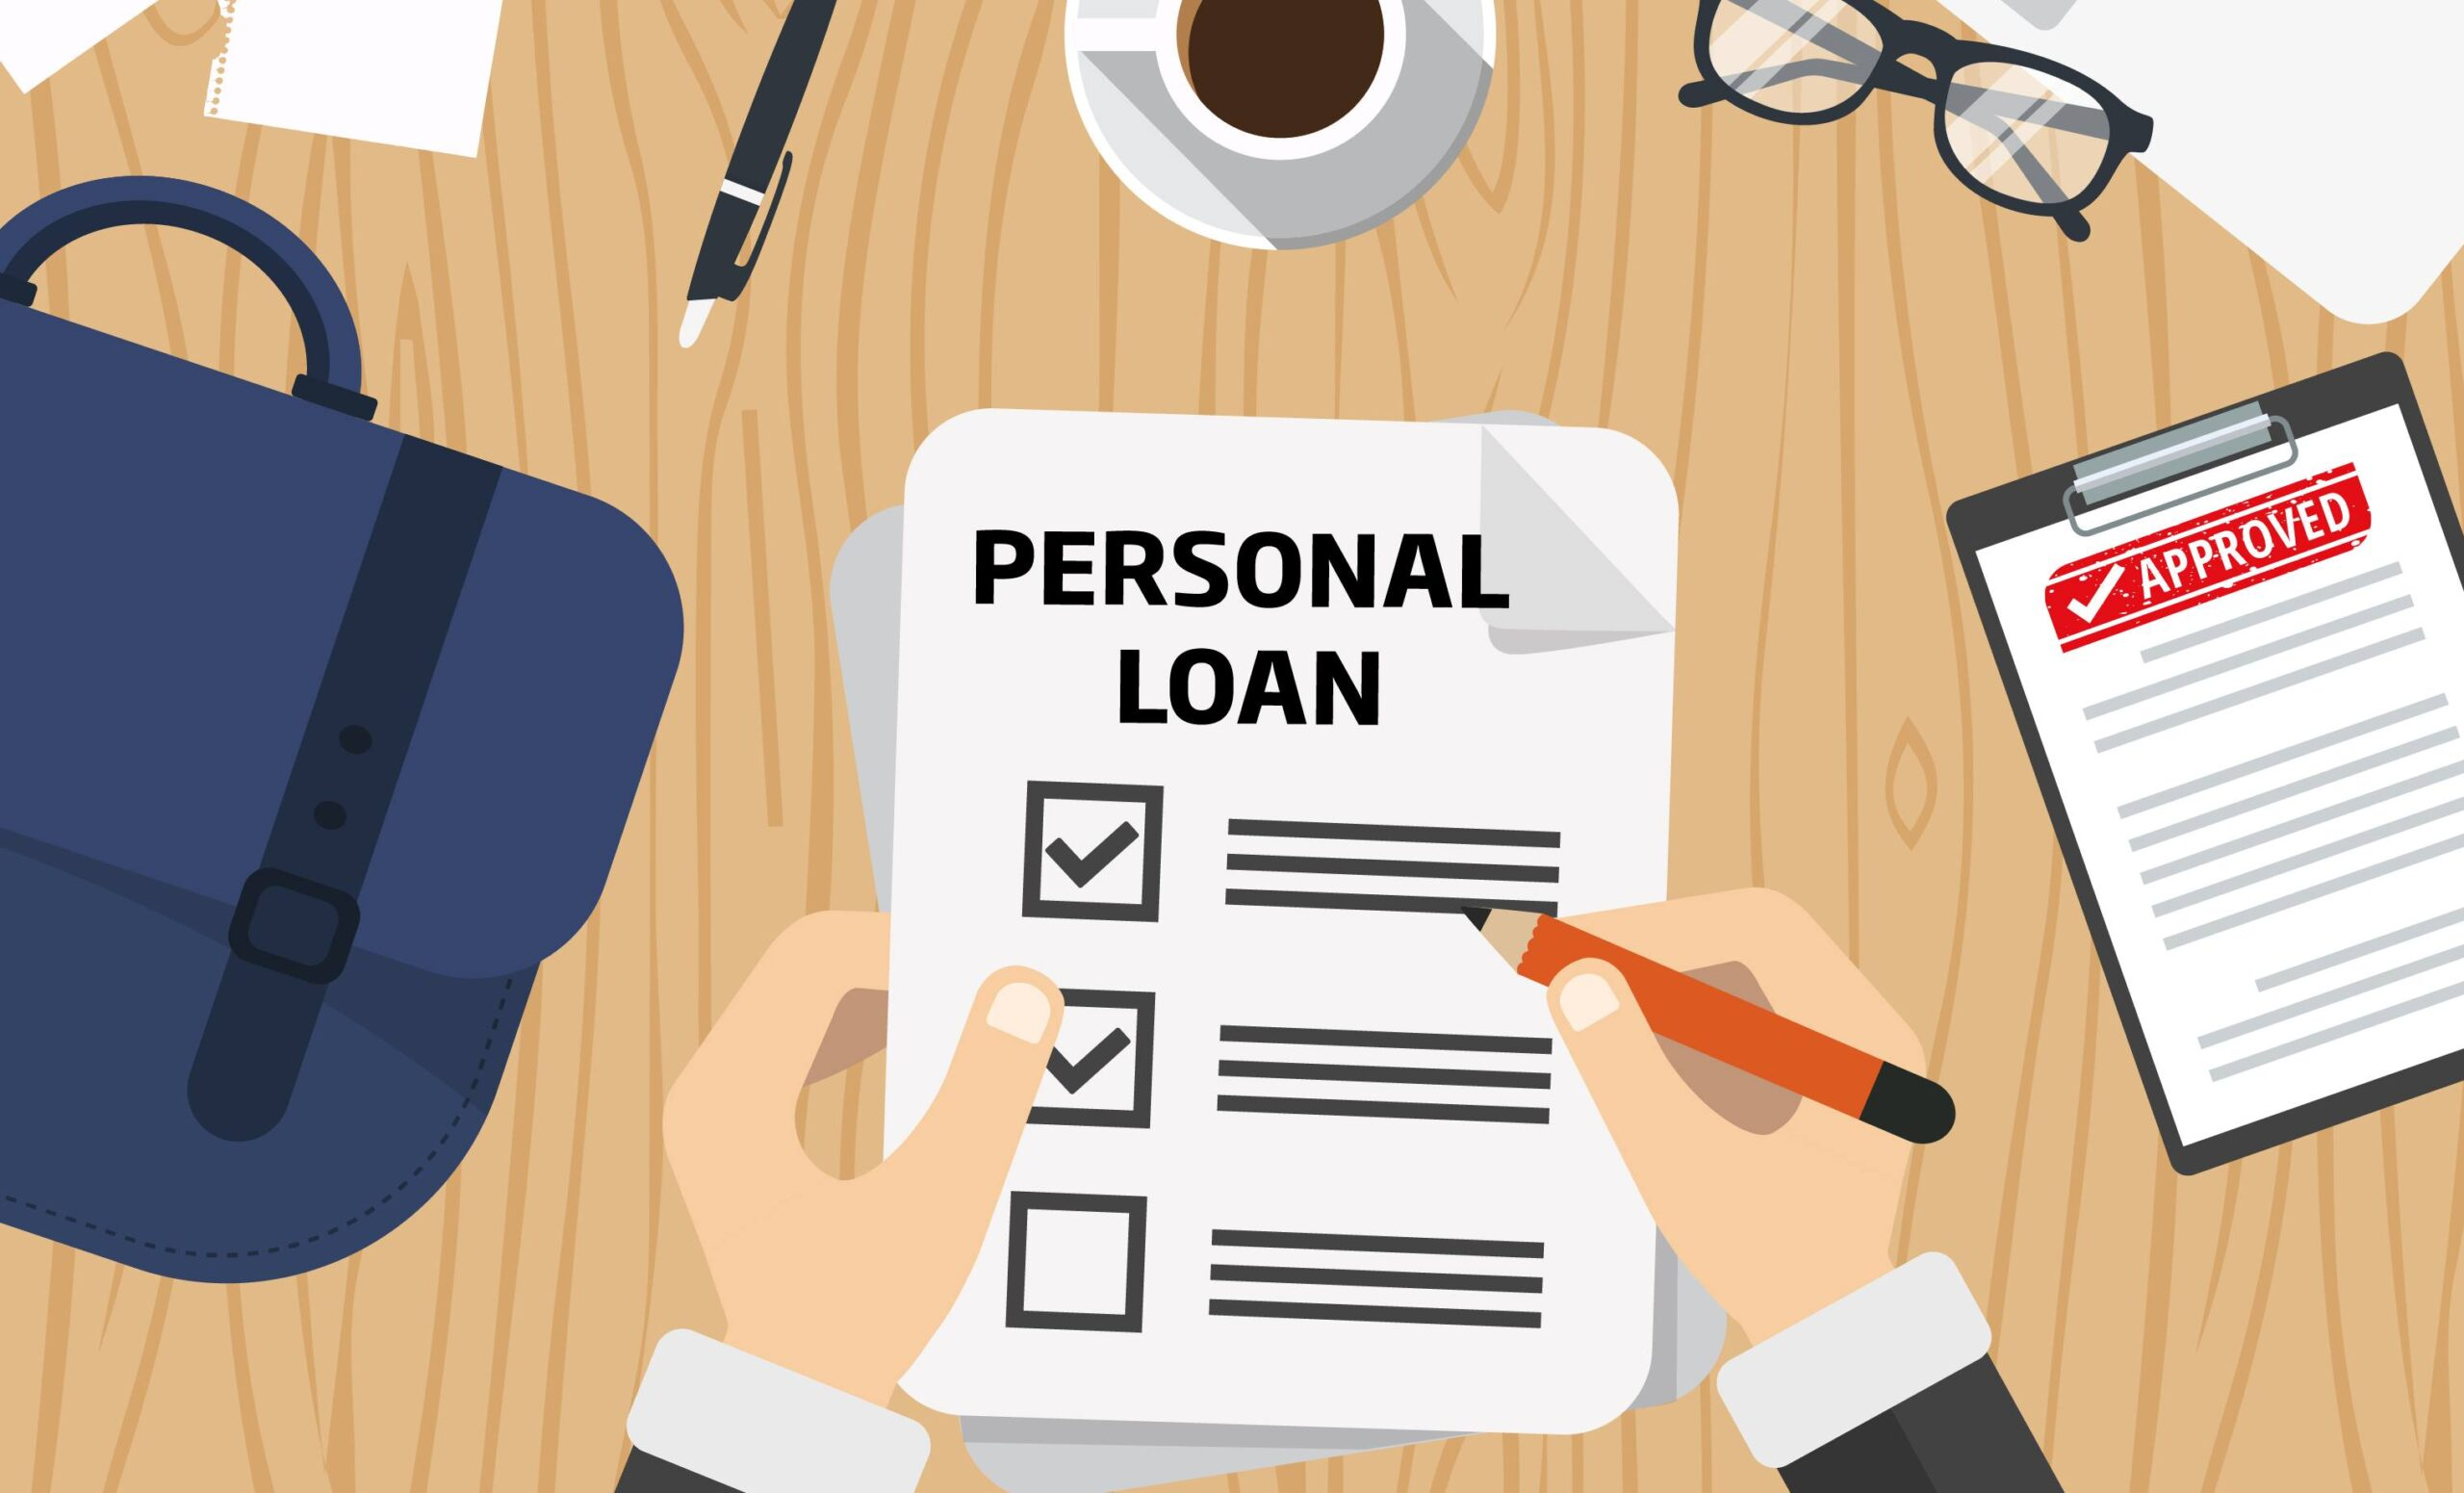 5 Warning Signs to Protect Yourself from Personal Loan Scams